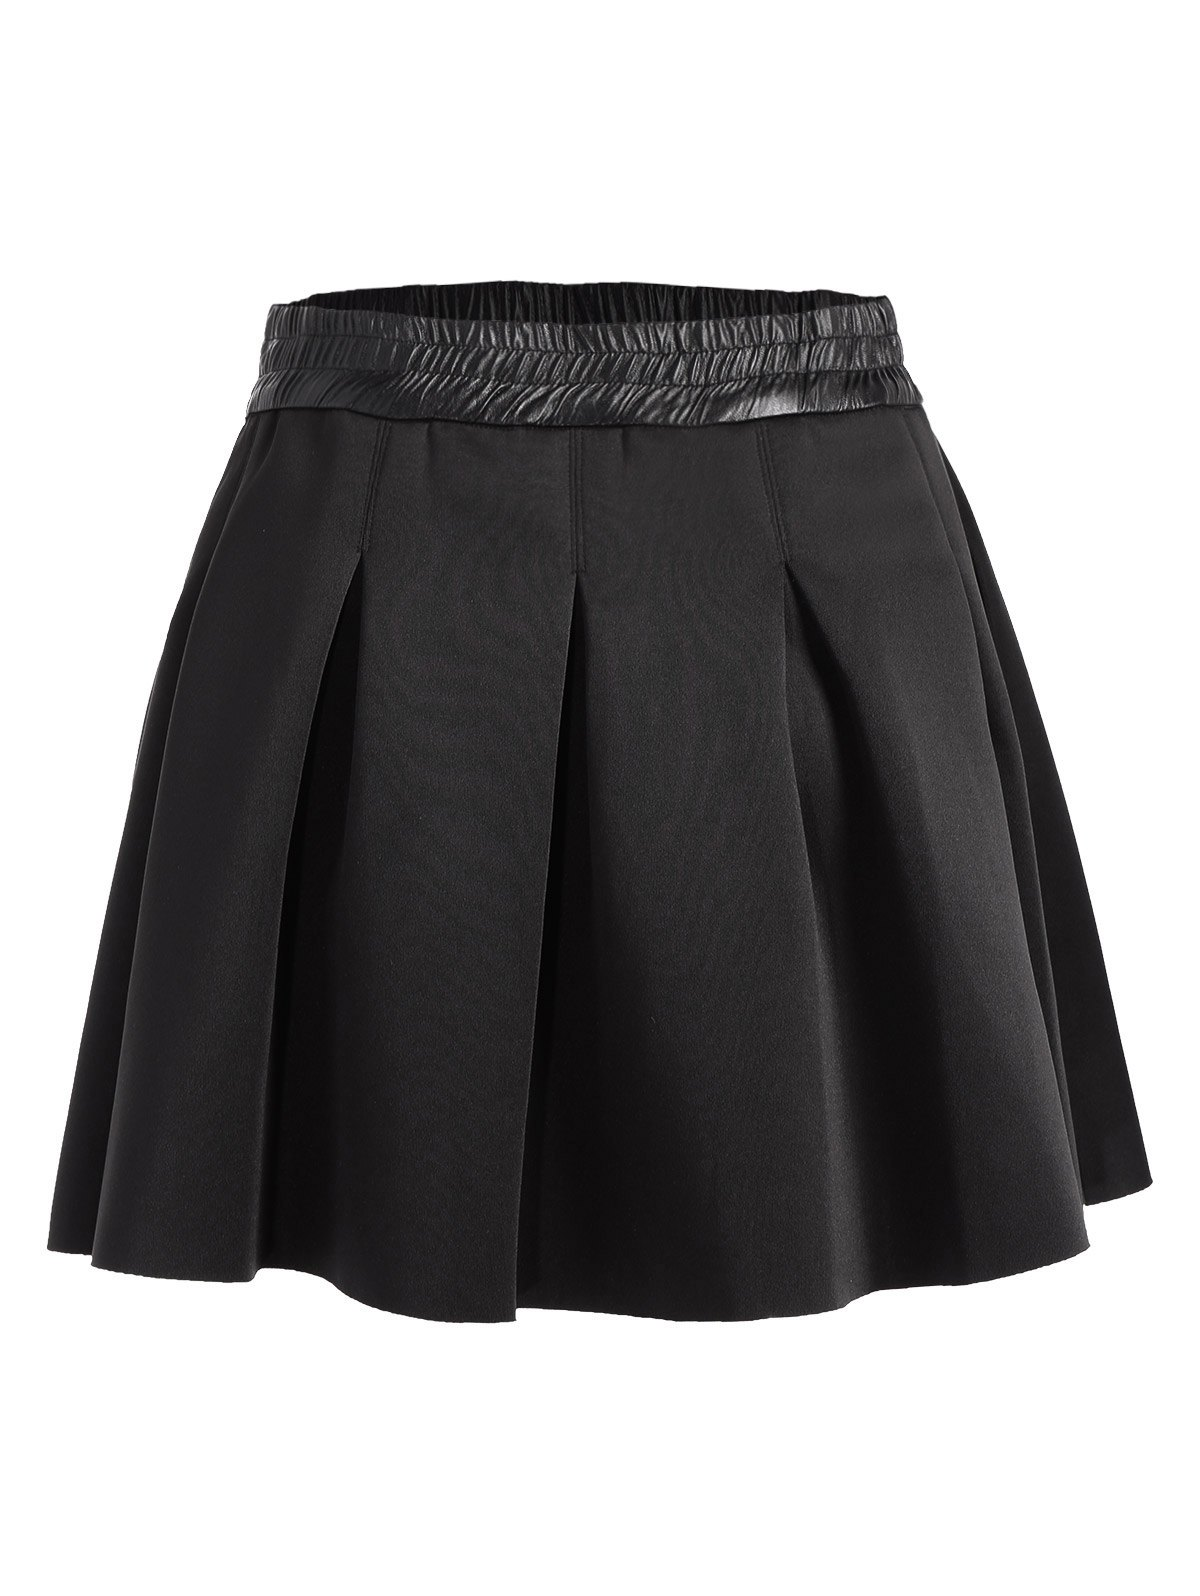 High Waisted Ruched Mini A Line Skirt - BLACK M